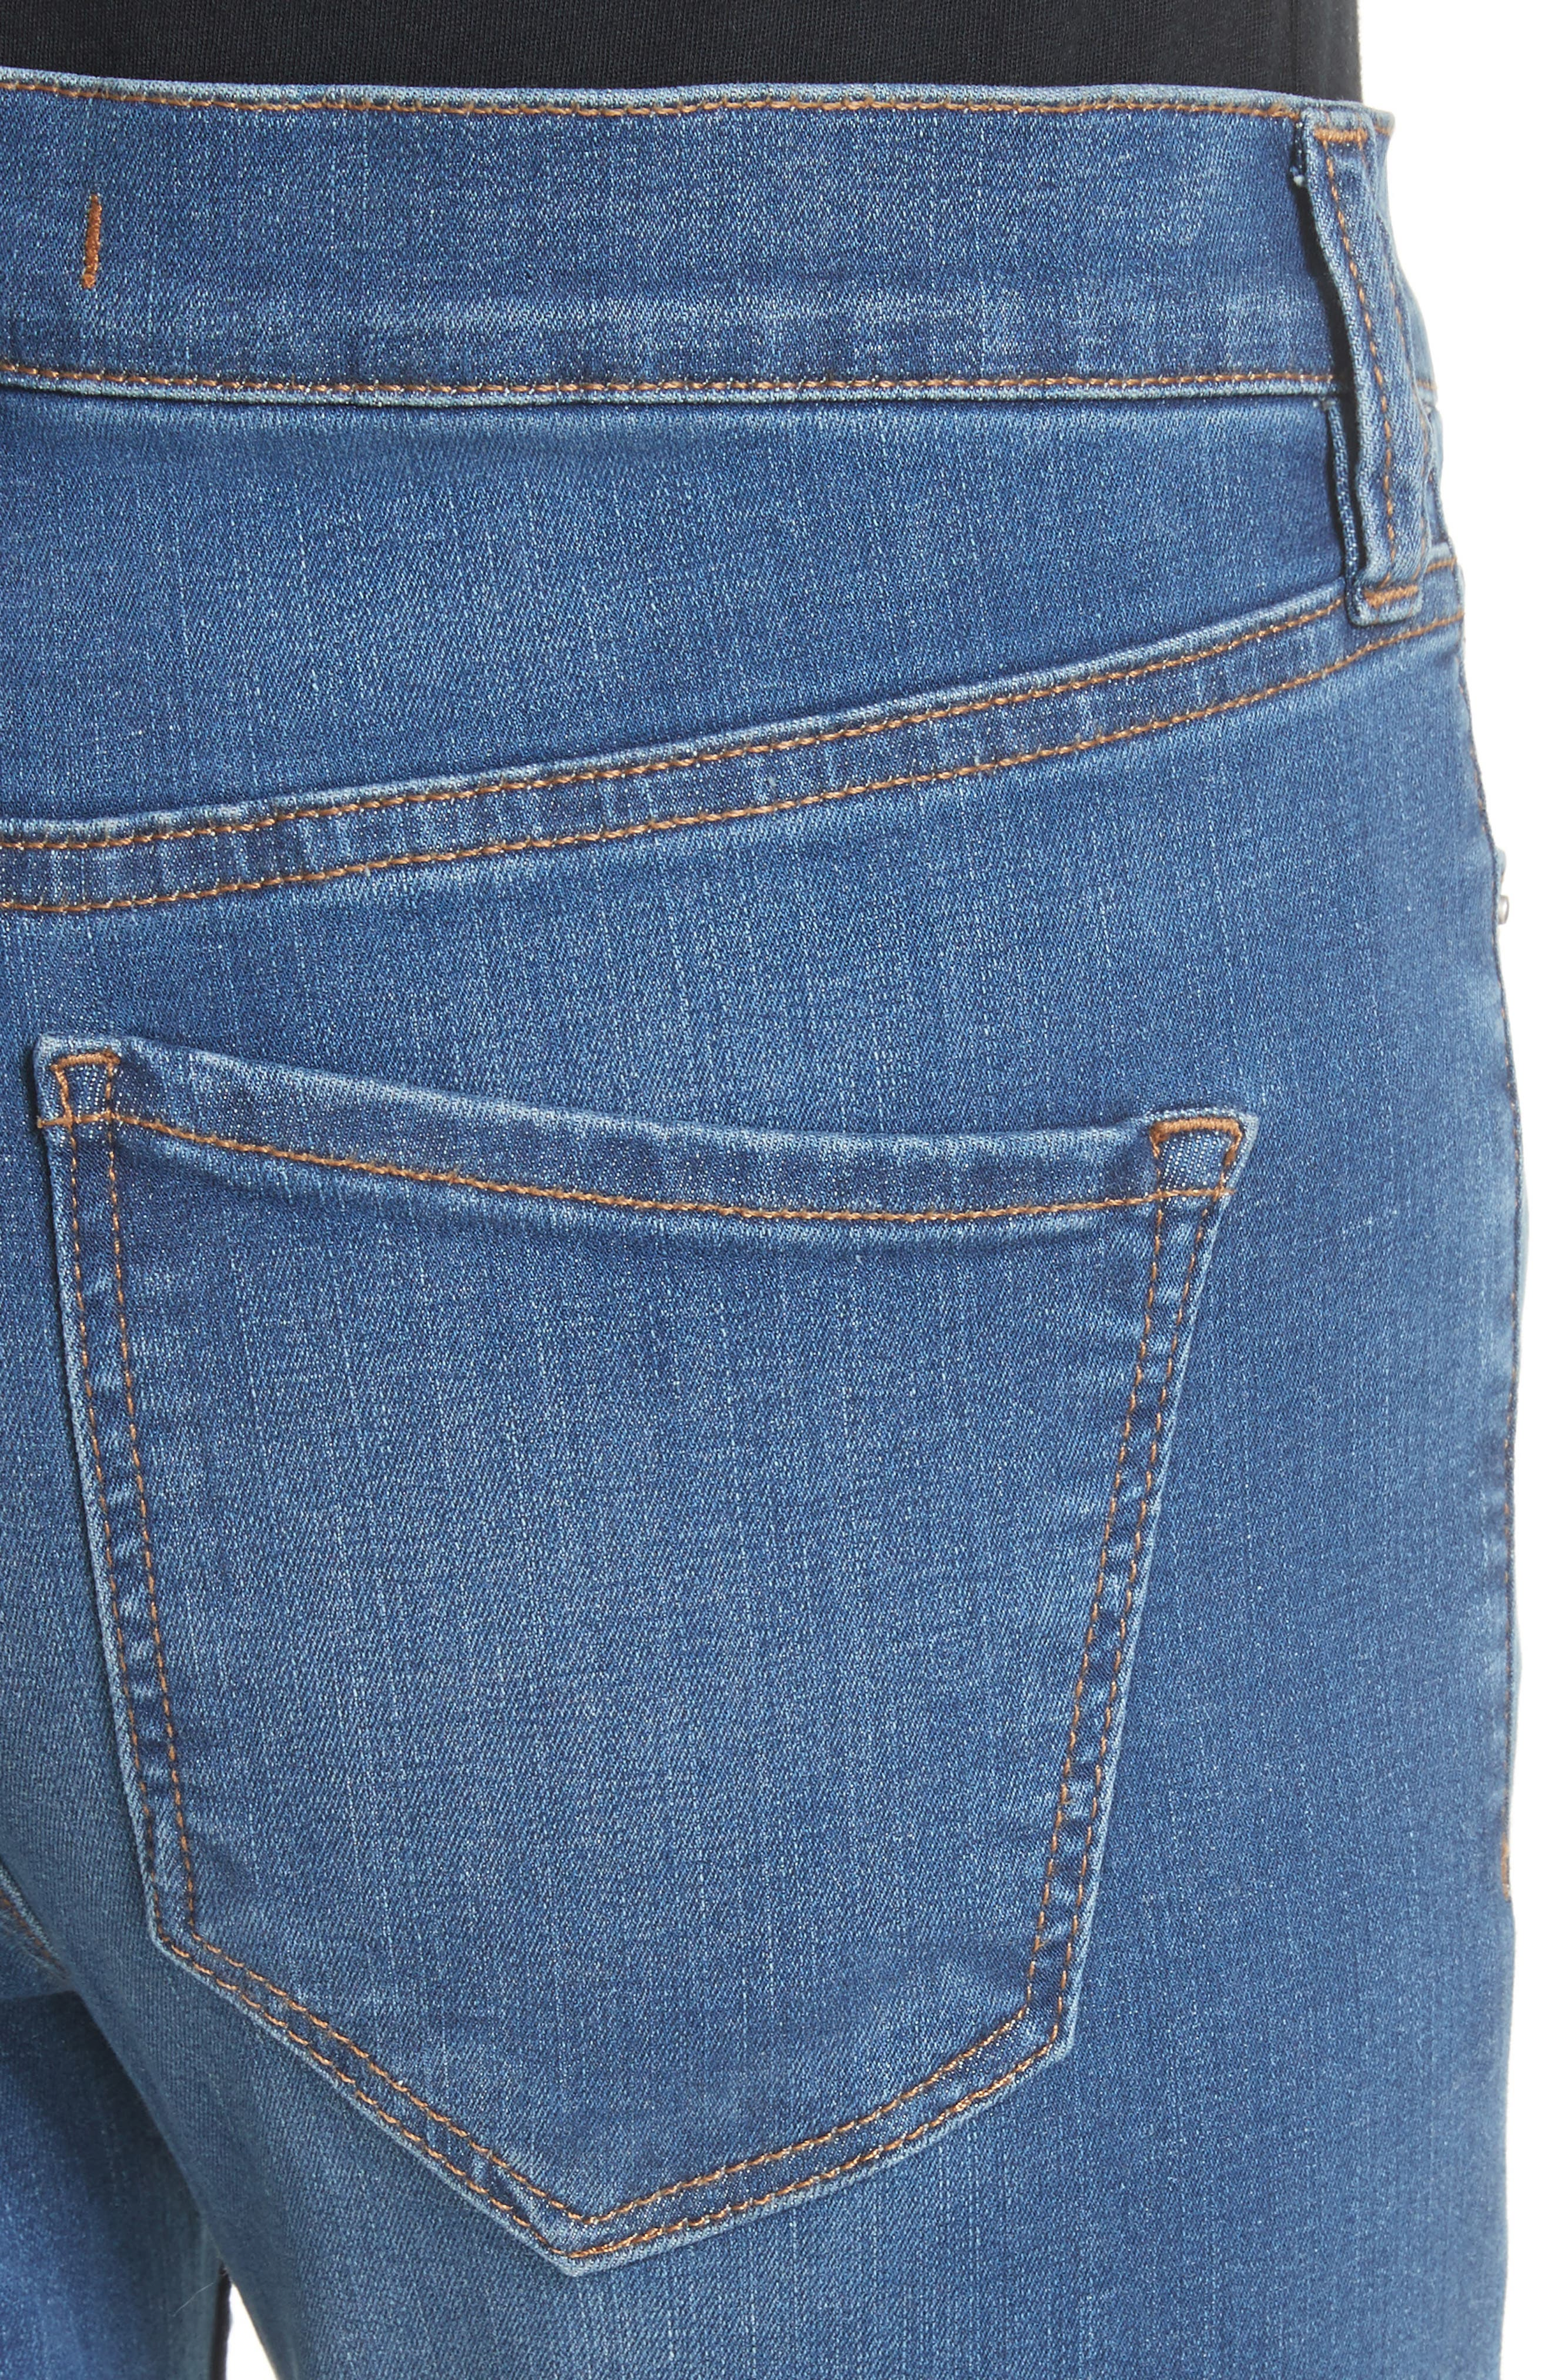 Ripped Crop Skinny Jeans,                             Alternate thumbnail 4, color,                             Blue